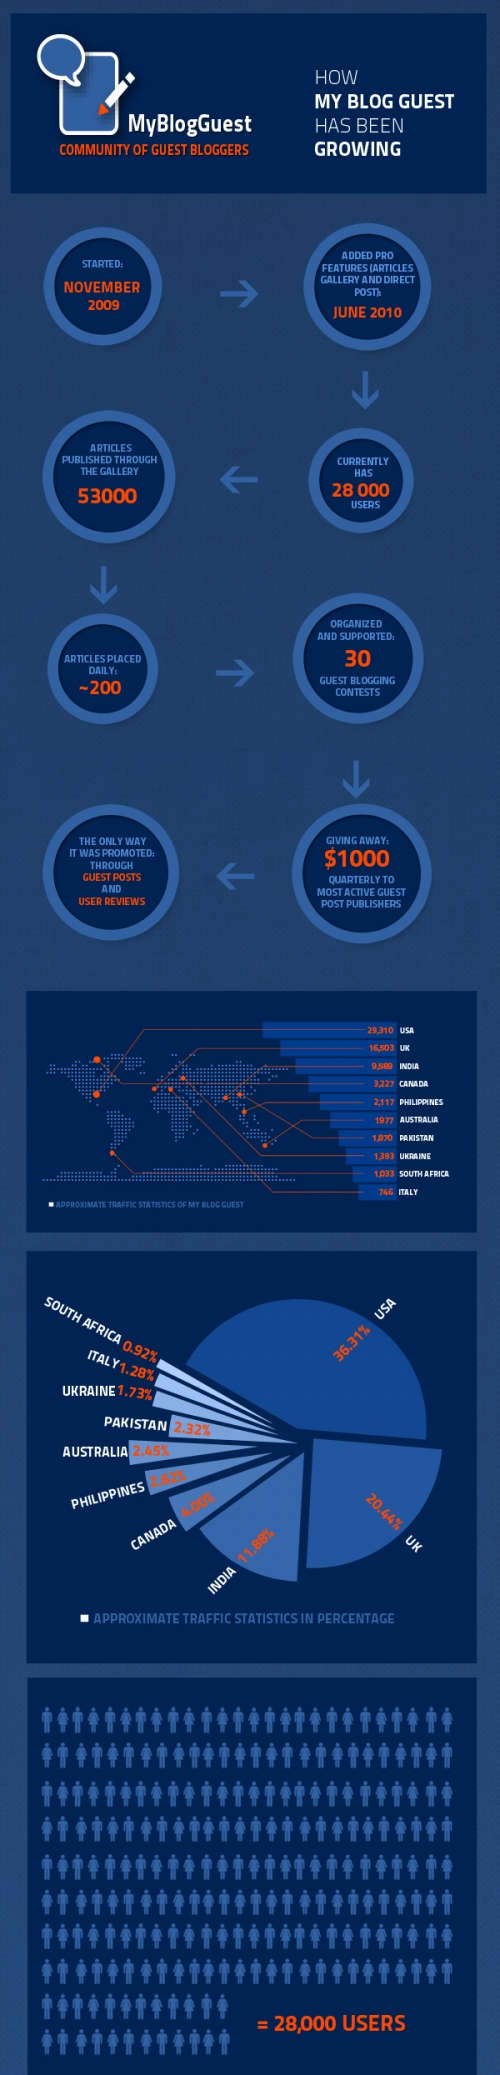 myblogguest-growth-infographic shows the incredible growth of myblogguest forums since its inception connecting guest bloggers with great blogs and publishers